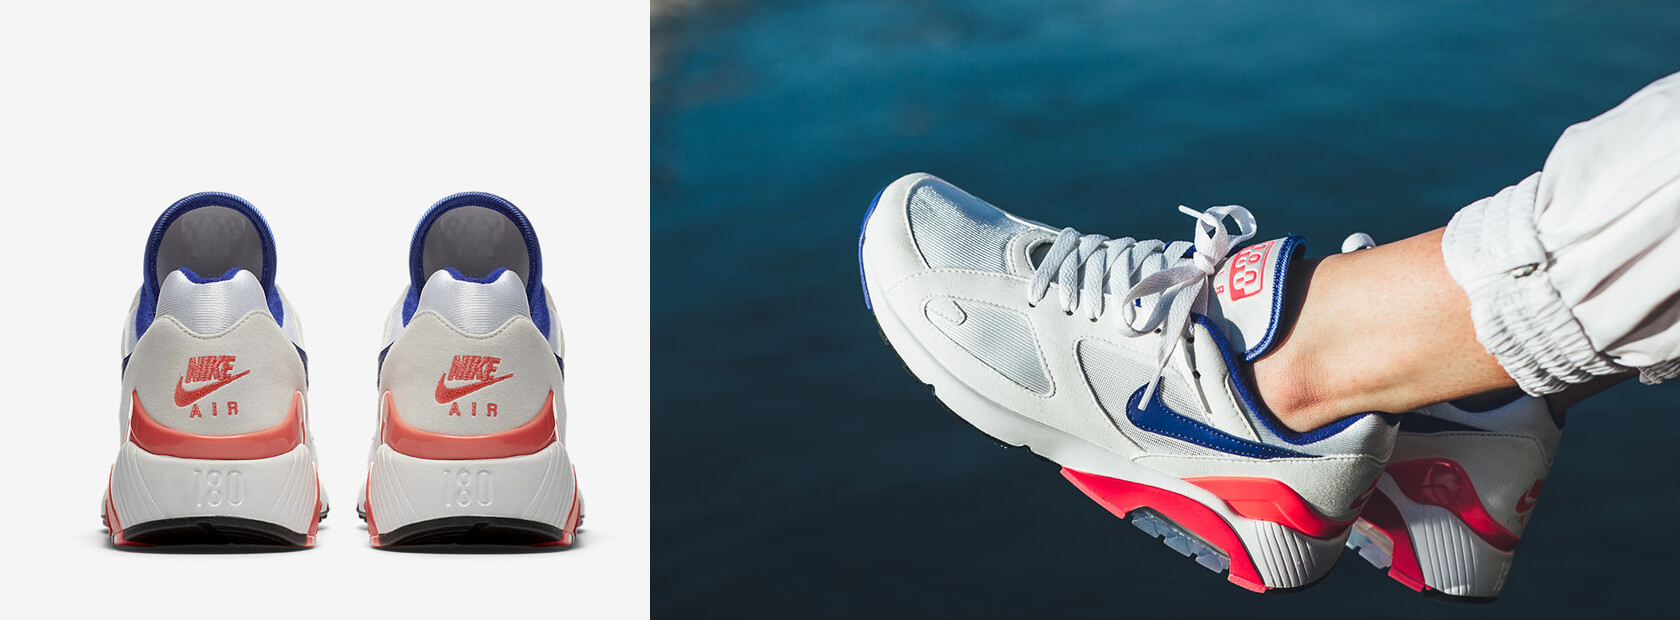 Nike Air Max 180 - Ultramarine